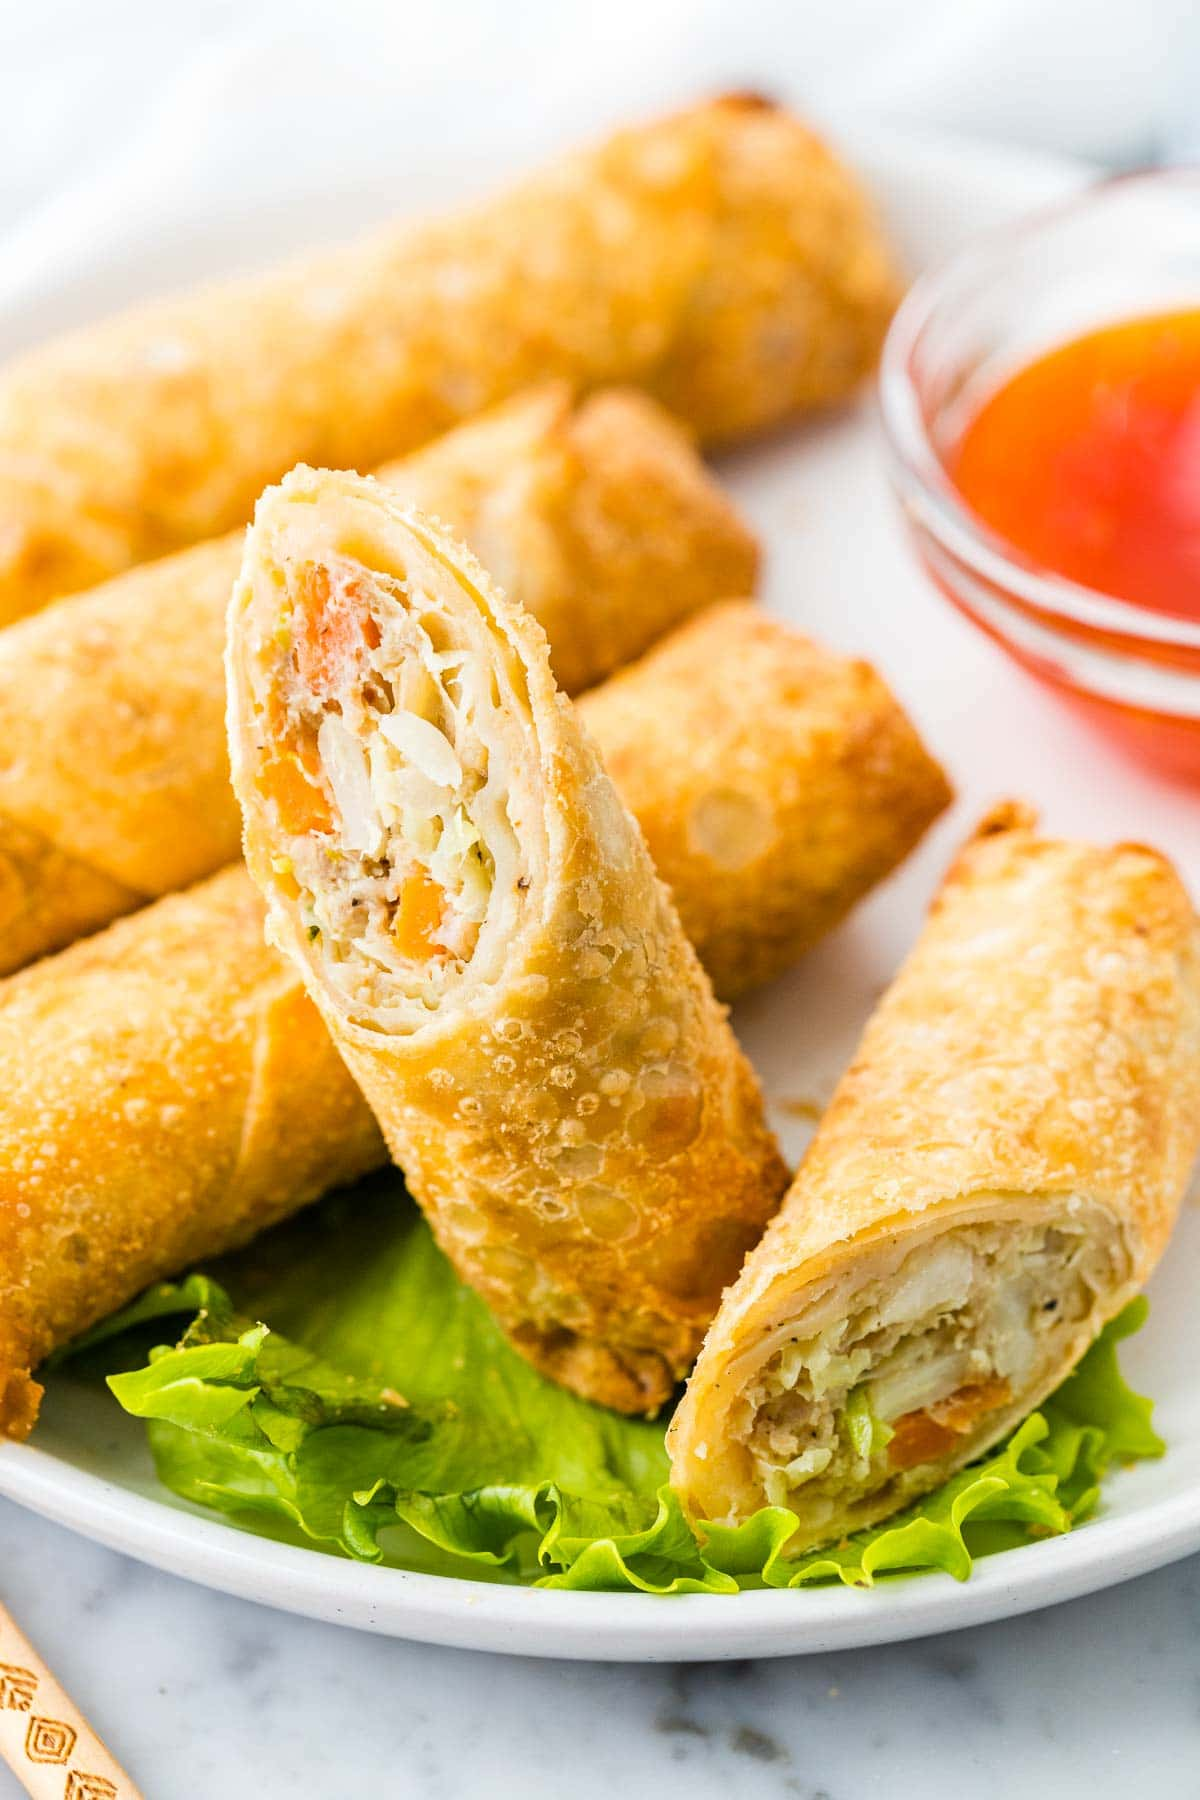 An egg roll cut into two halves on a white plate